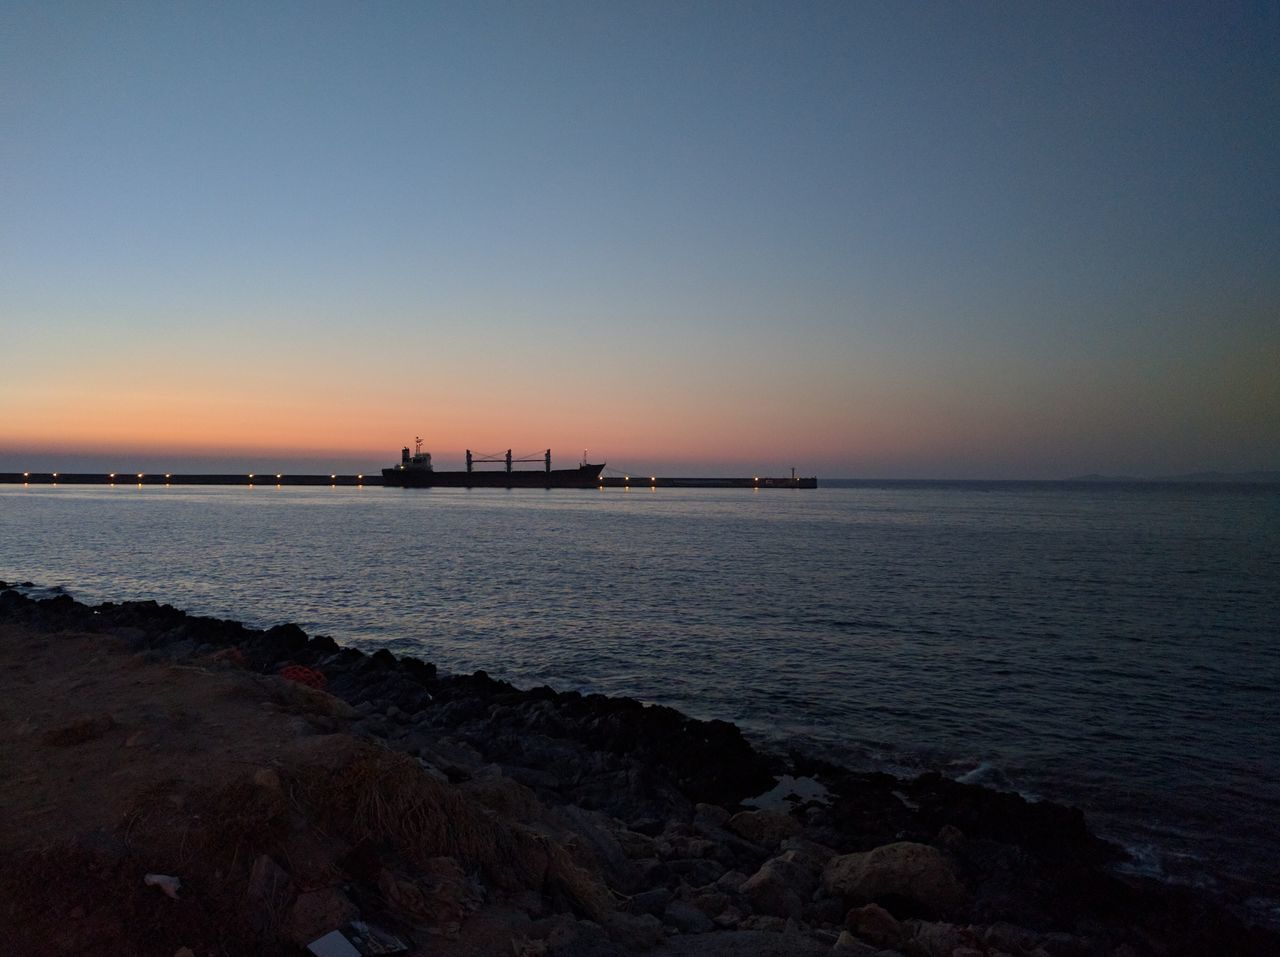 Colour Of Life The Last Ship Photography Crete Greece Sunset No Filter